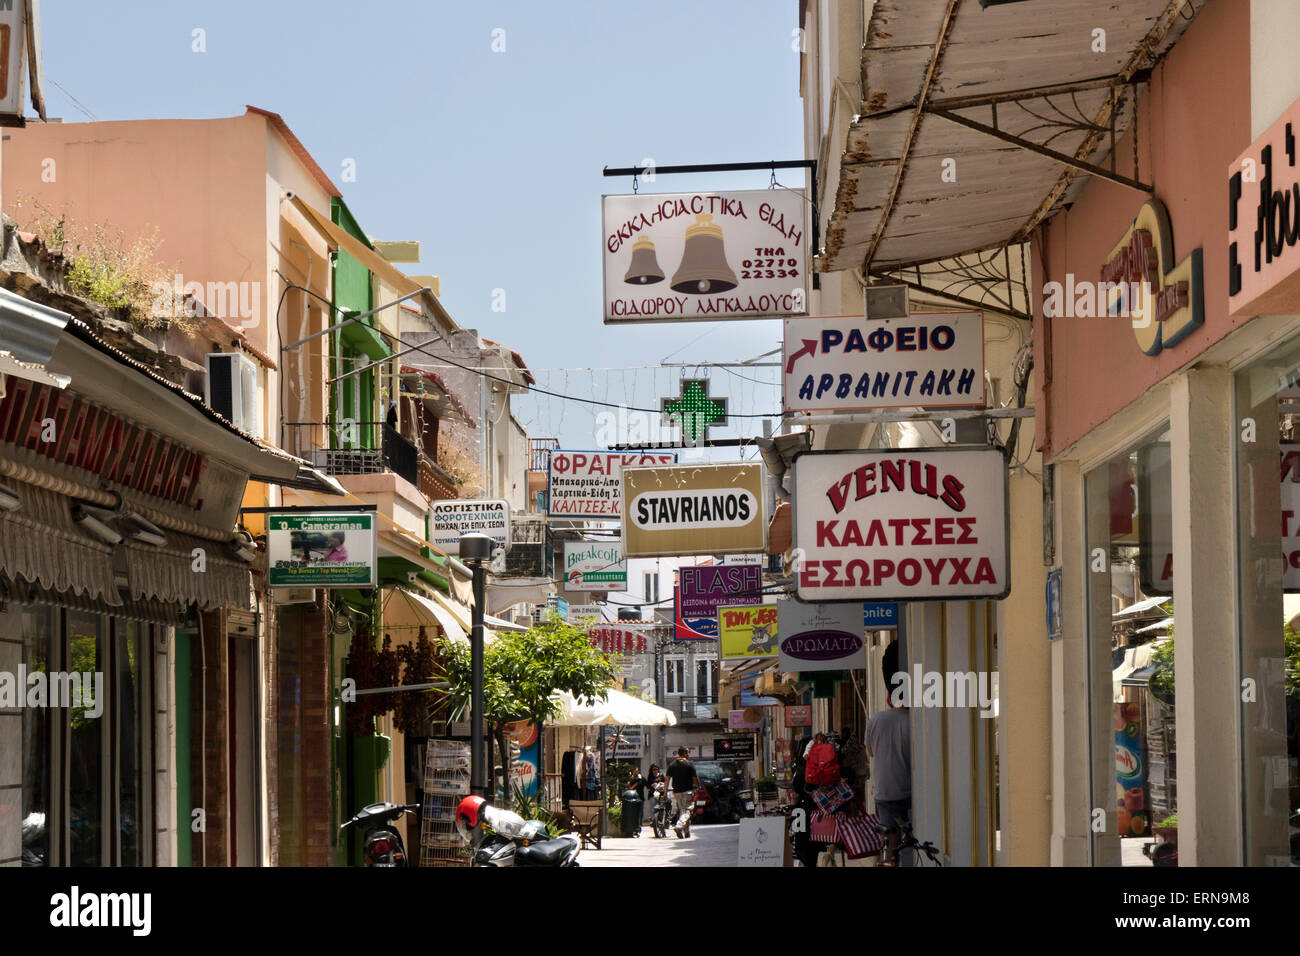 Signs in greek language on the shops in a street in Chios on the isle of Chios, Greece - Stock Image